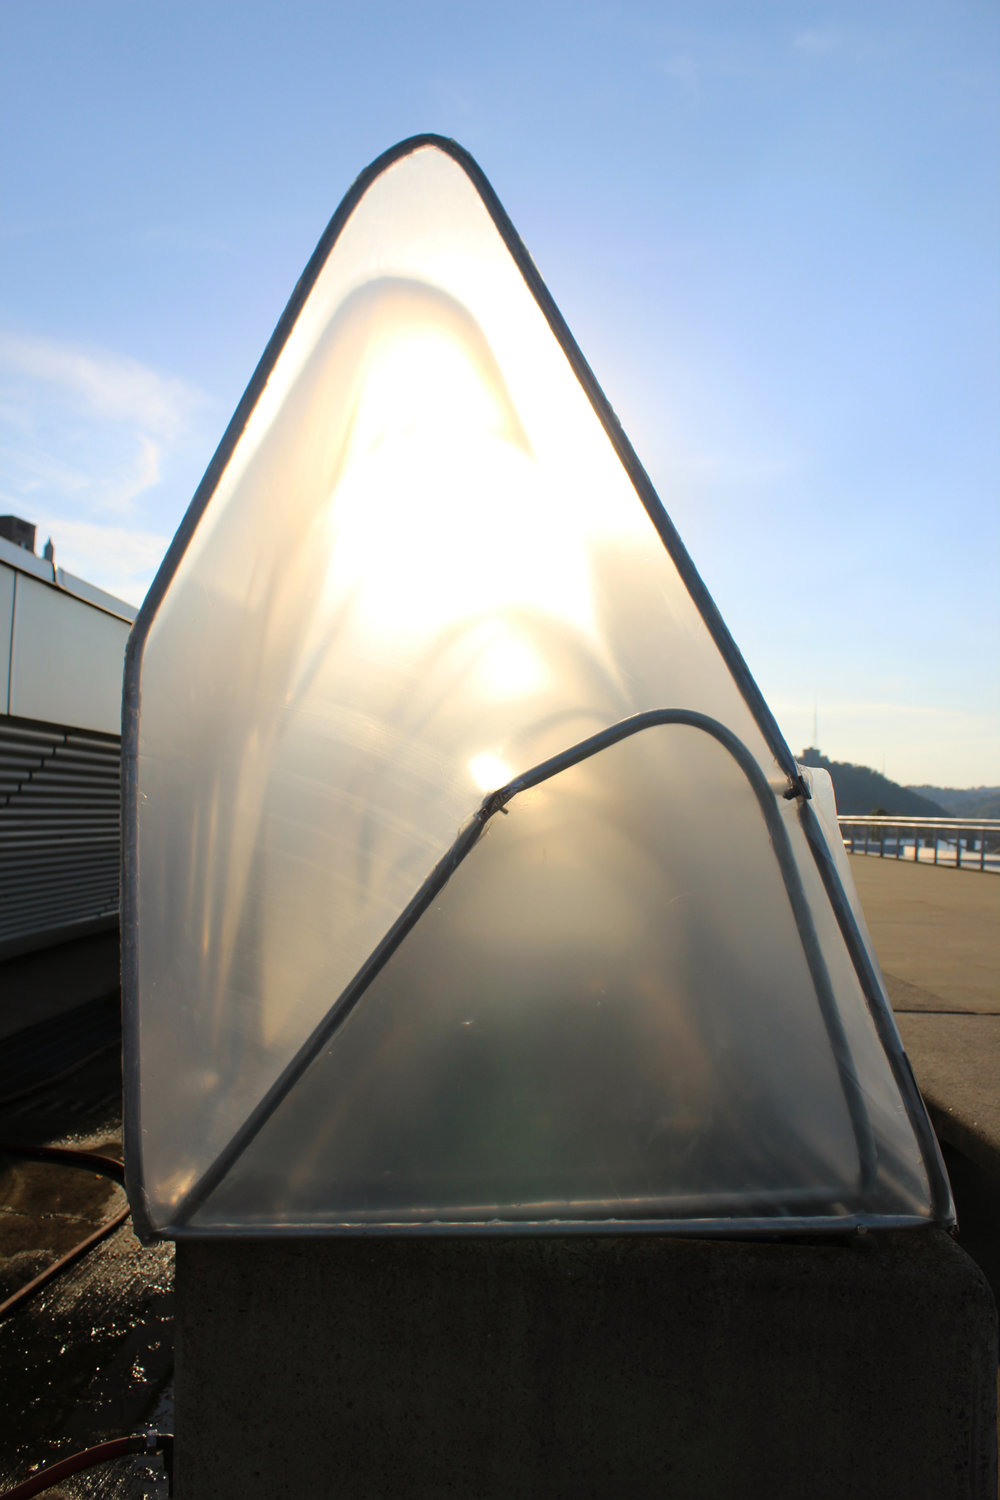 With the sun shining though our hoop house, you can really see the double layer design.